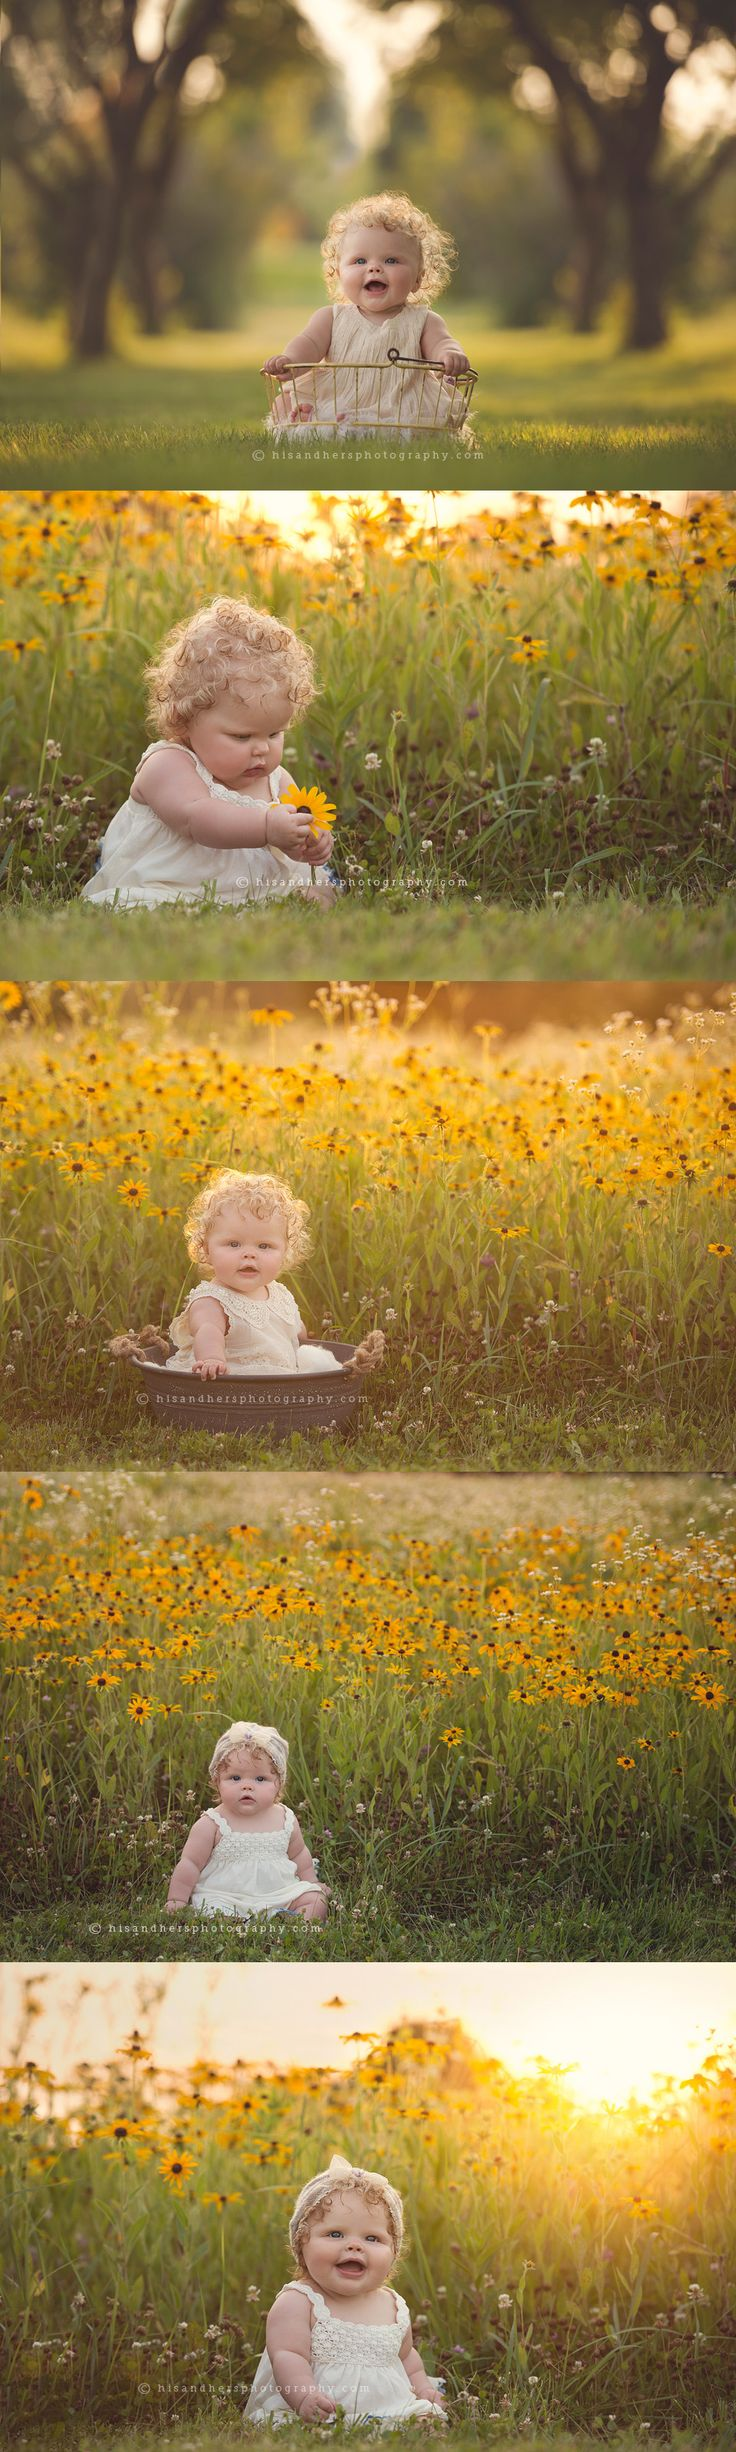 Des Moines, Iowa photographer, Darcy Milder, 7 month old baby pictures